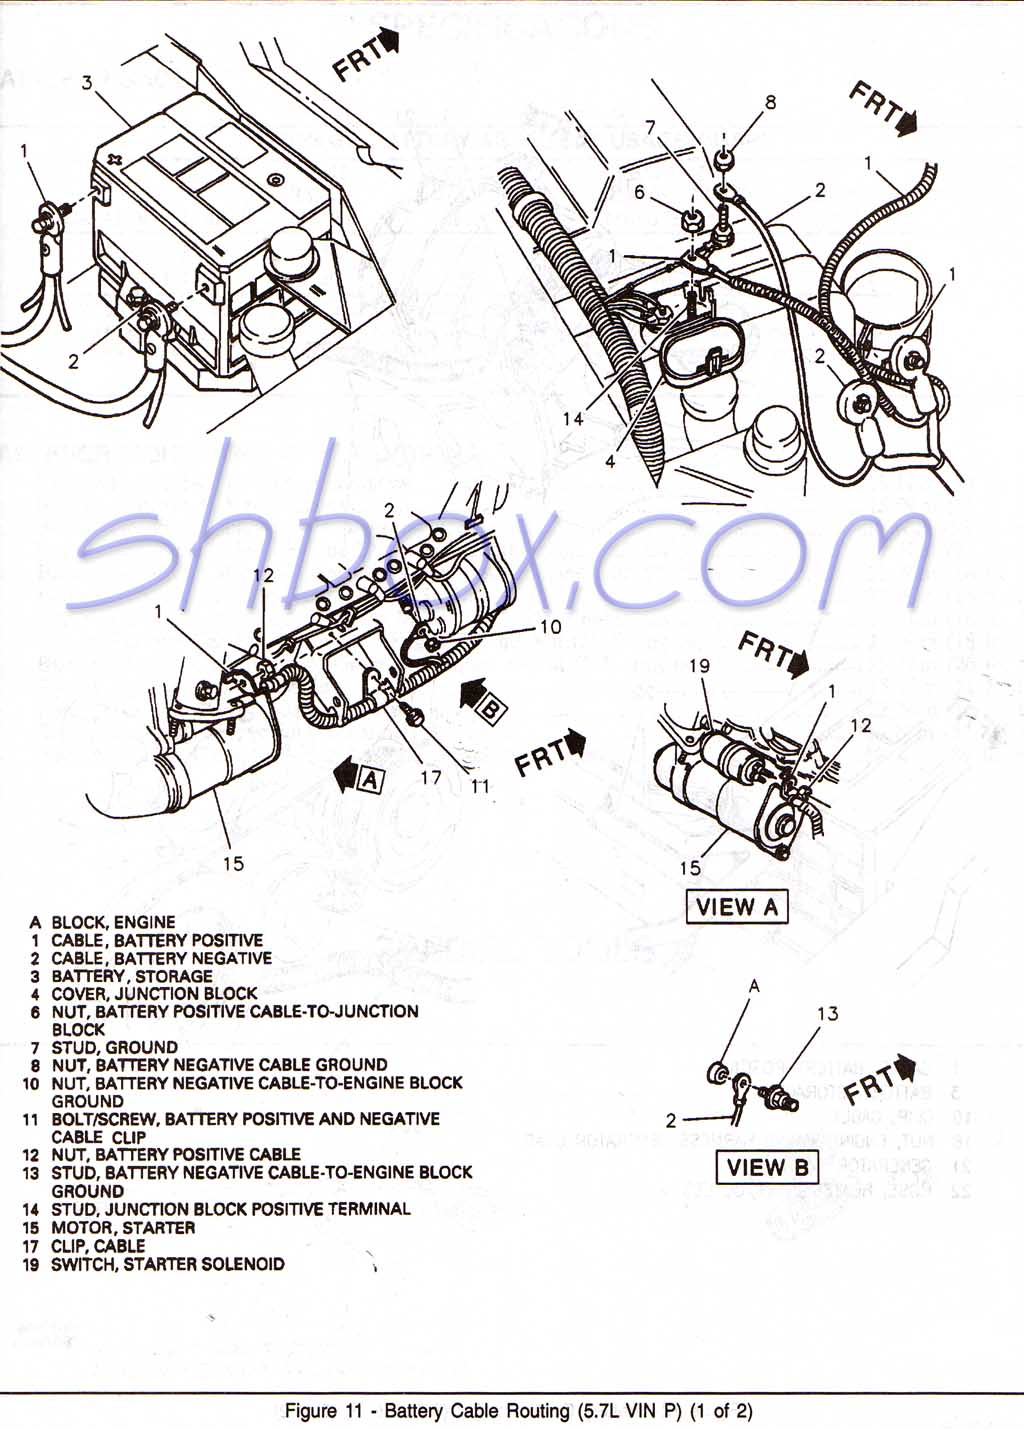 hight resolution of starter and charging schematic 1996 battery cable routing view 1